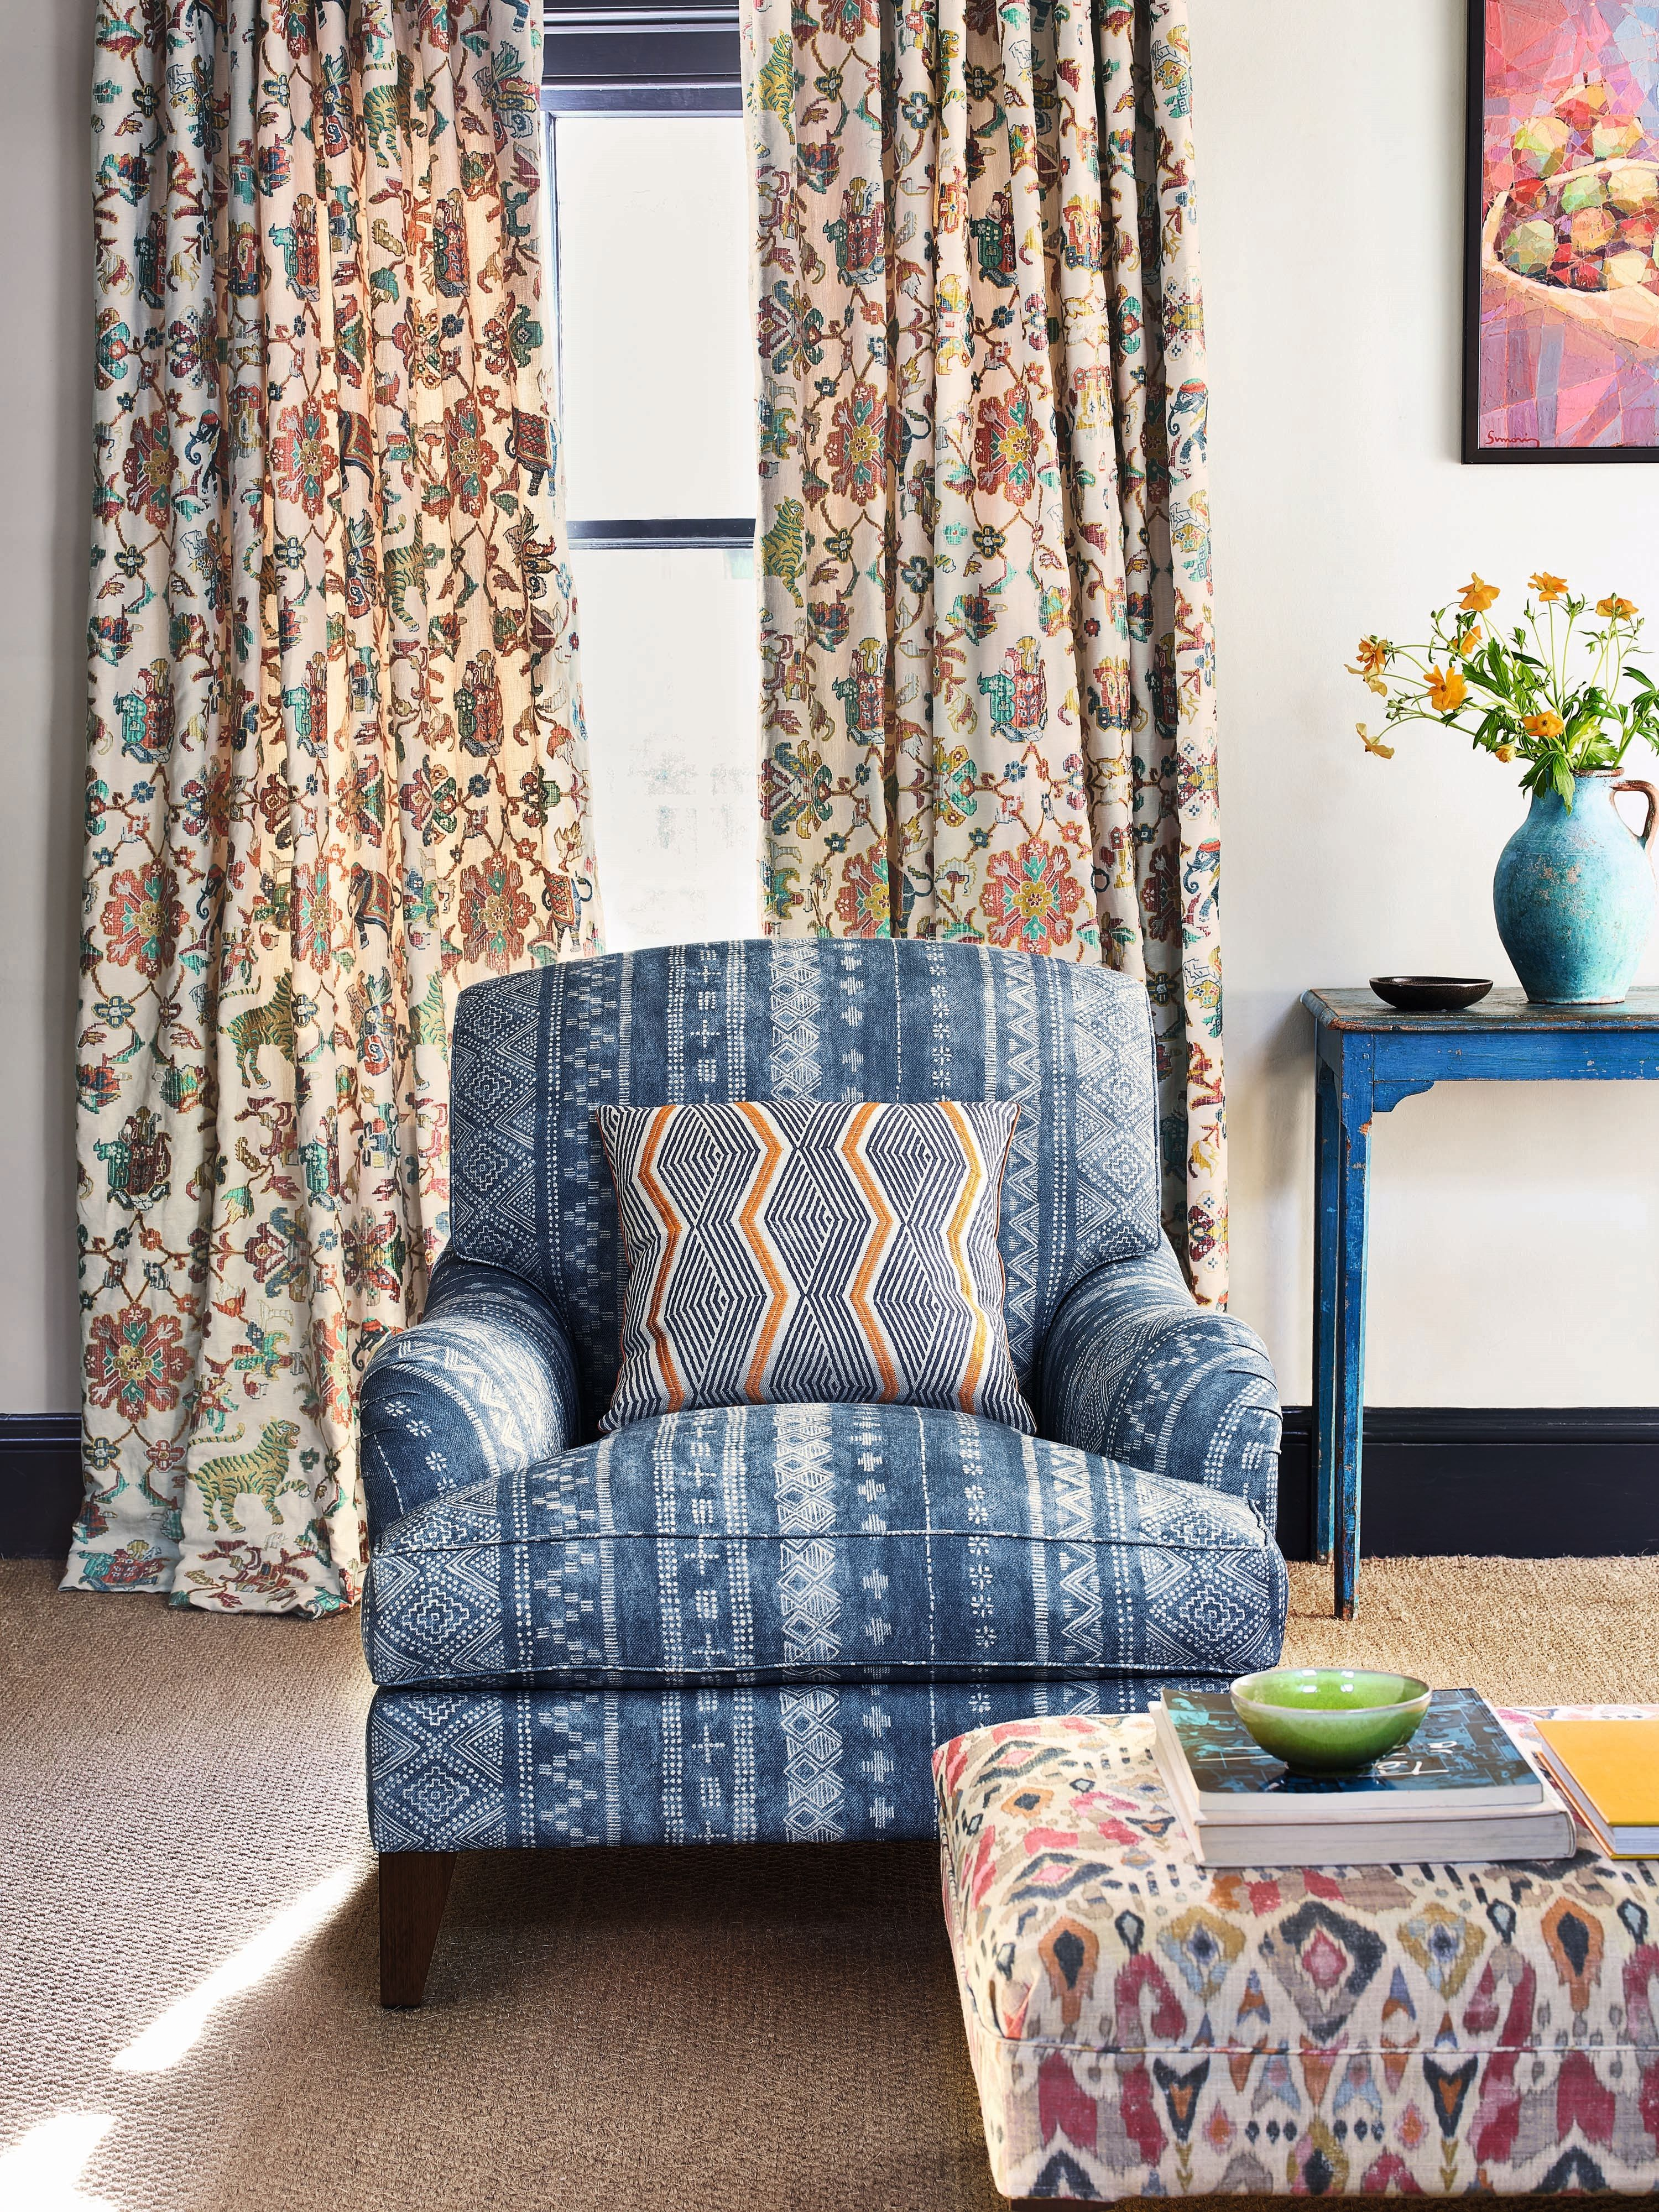 Pin By Jane Churchill On Azara Collection Interior Inspiration Home Decor Upholstery